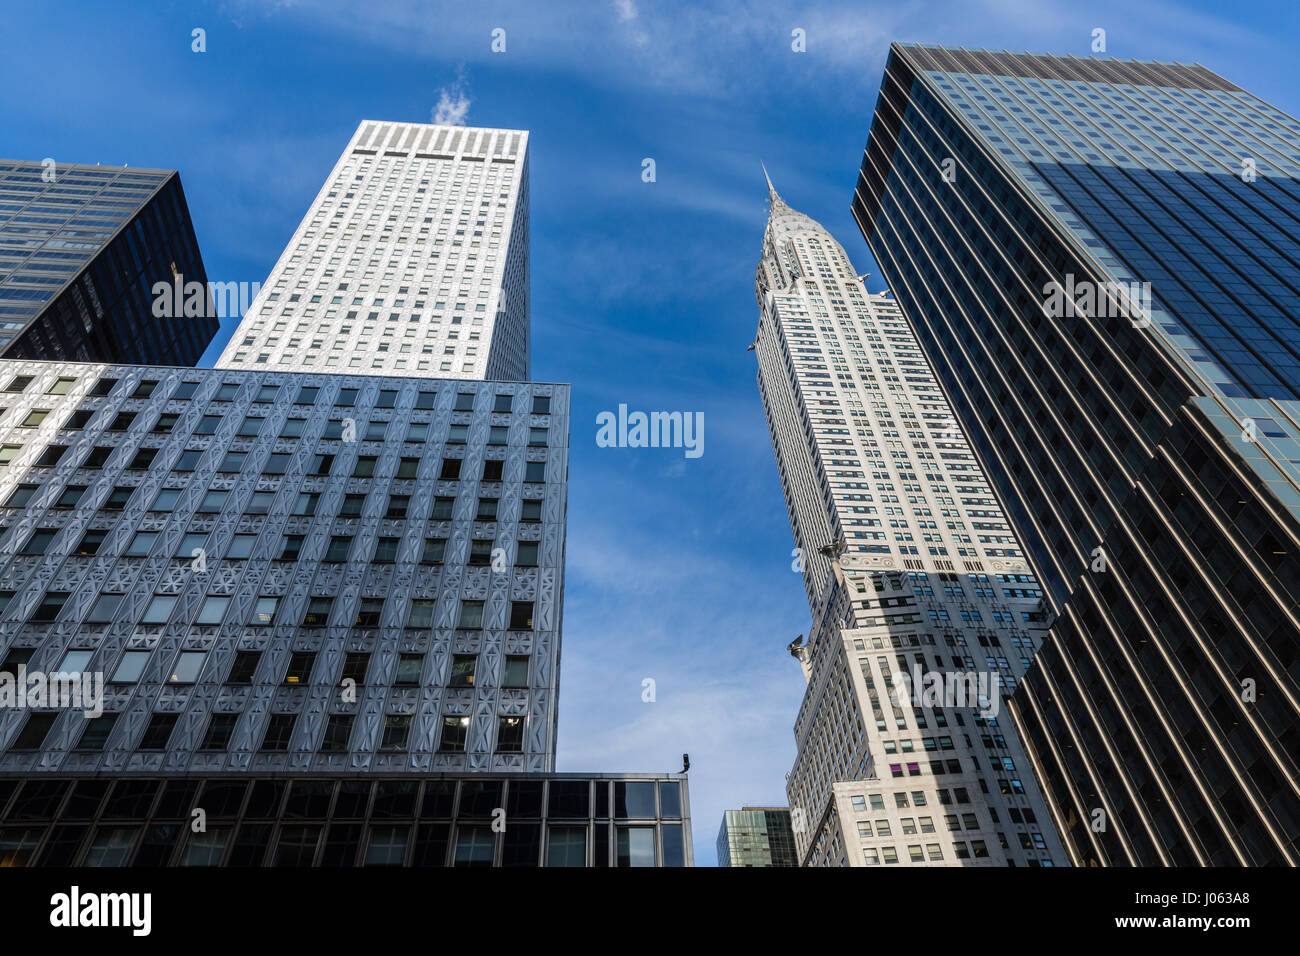 New York Skyline with sky scrapers and Chrysler Building - Stock Image